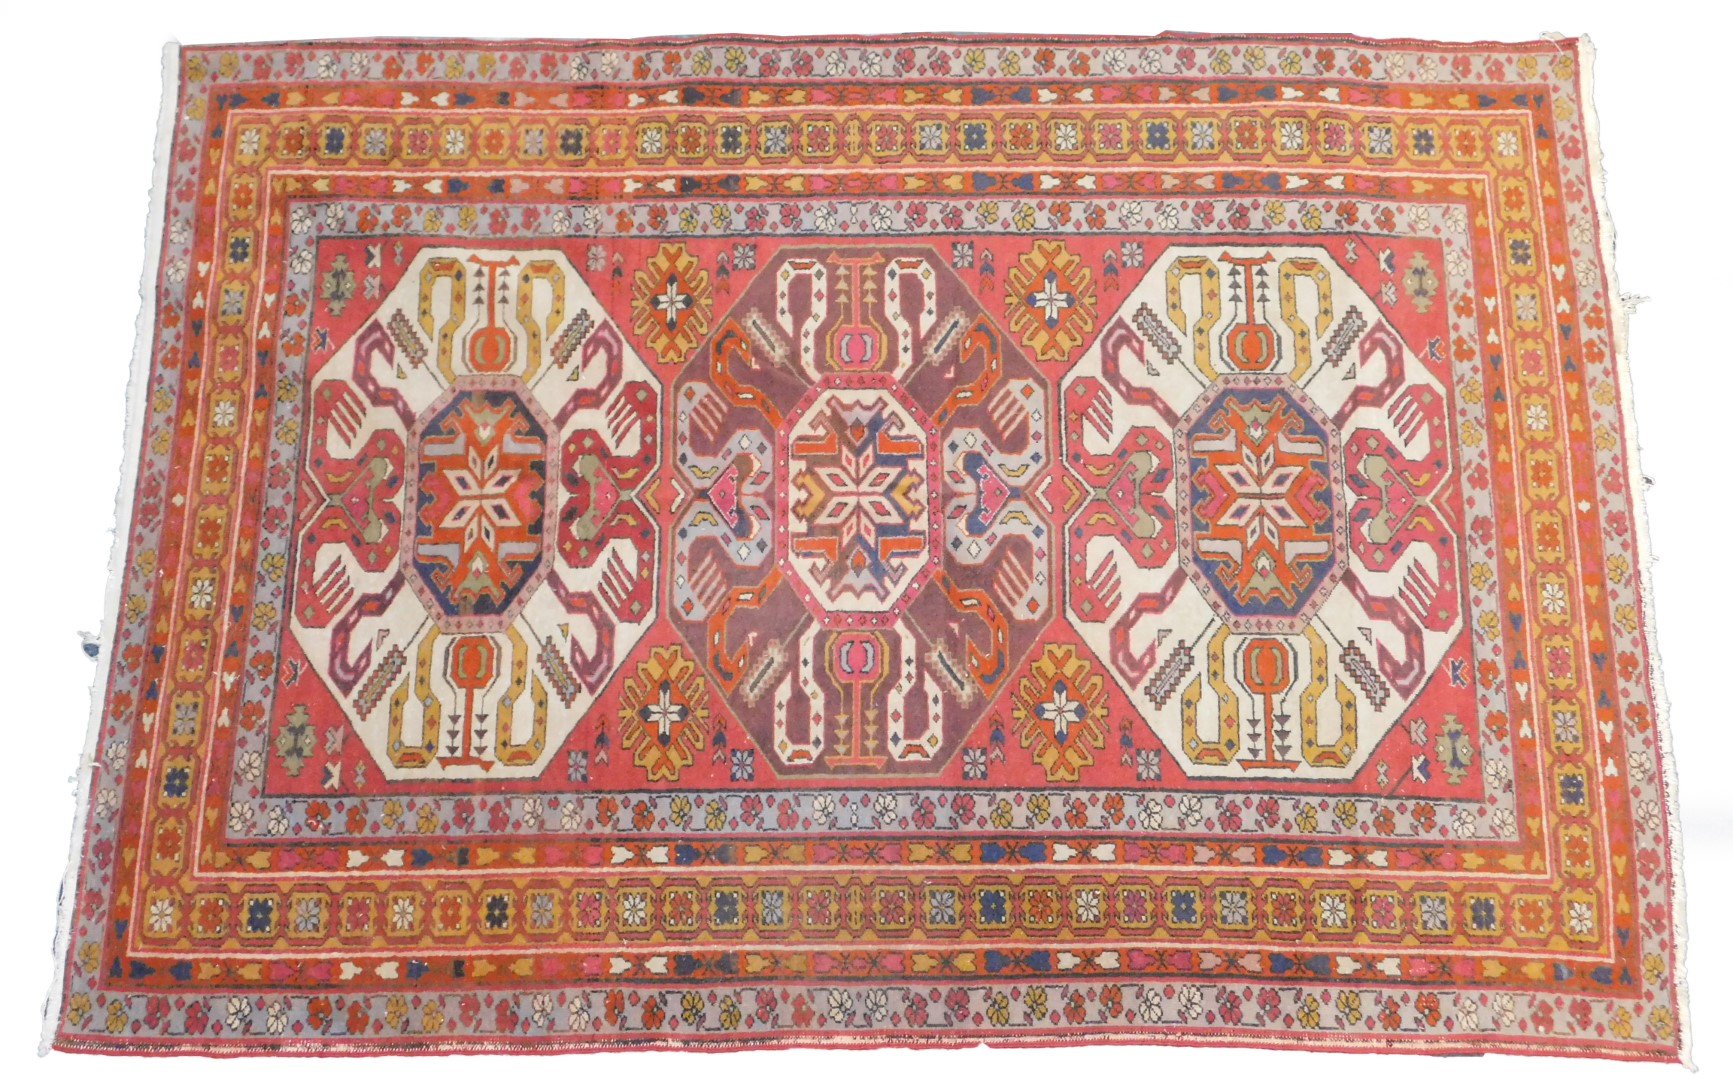 Lot 14 - An Azerbaijan Kazak rug, with three central medallions on a red ground, enclosed by triple borders